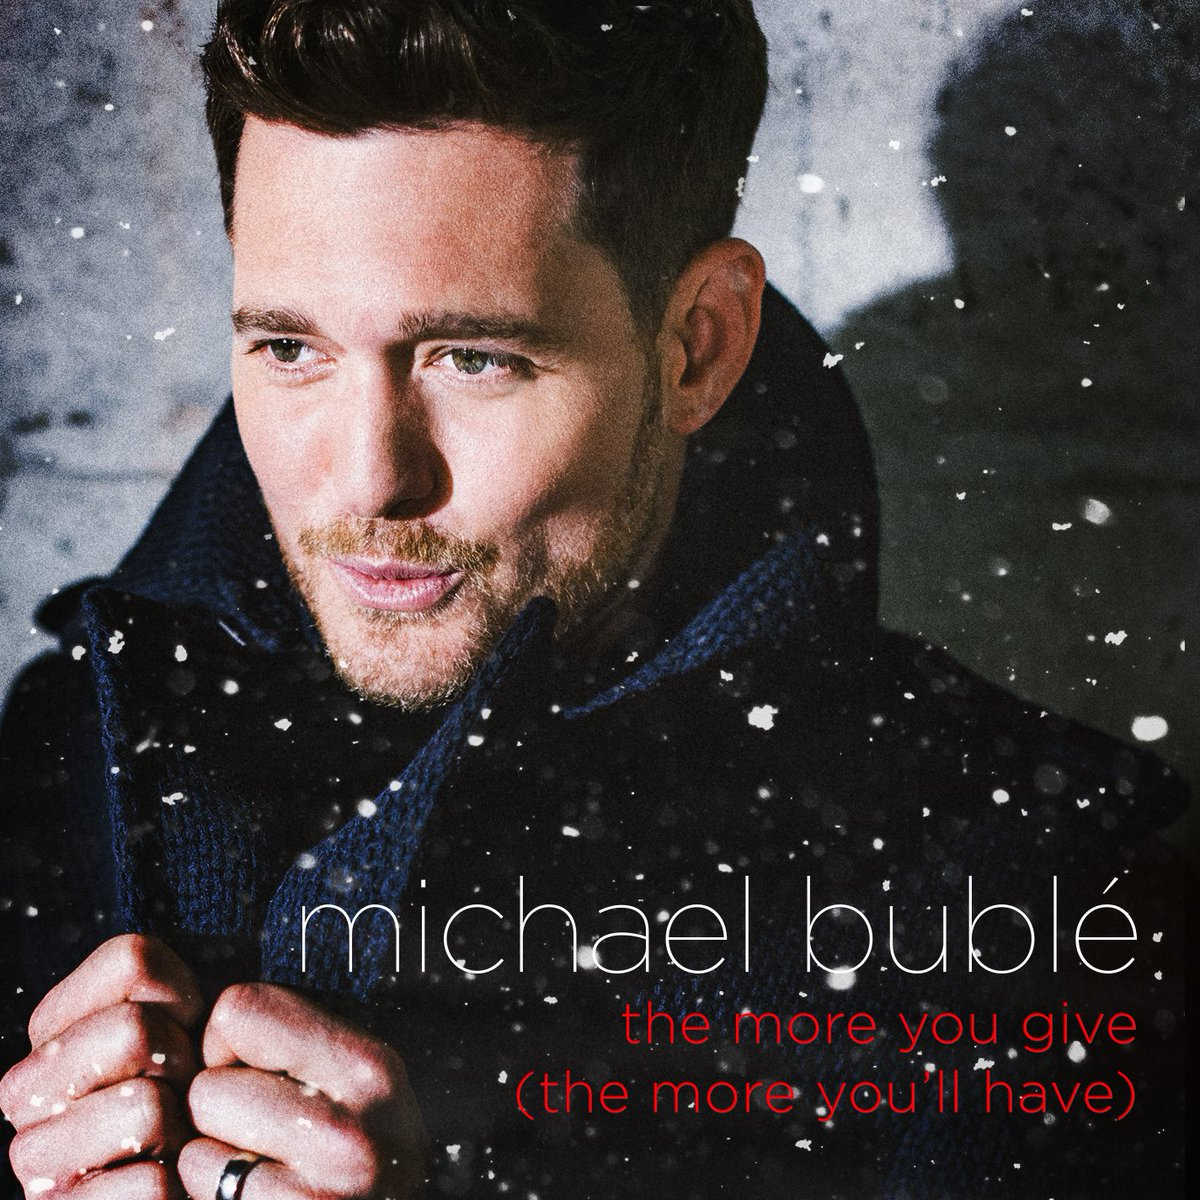 michael bubl on twitter michaels brand new original christmas song the more you give the more youll have is out nov 30 - Michael Buble Christmas Songs